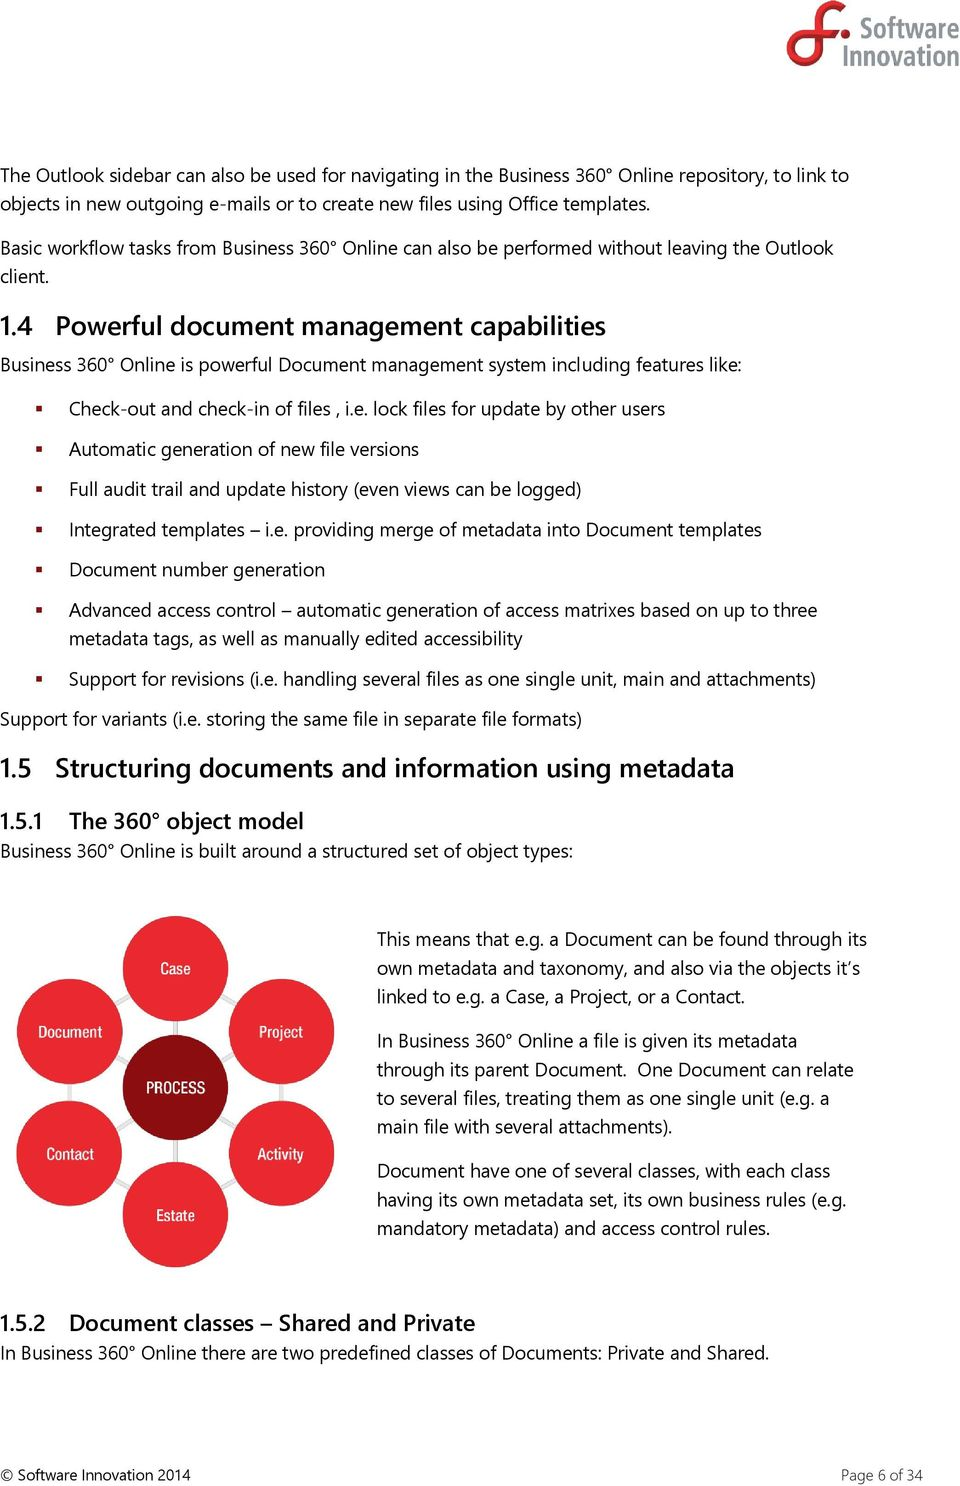 4 Powerful document management capabilities Business 360 Online is powerful Document management system including features like: Check-out and check-in of files, i.e. lock files for update by other users Automatic generation of new file versions Full audit trail and update history (even views can be logged) Integrated templates i.